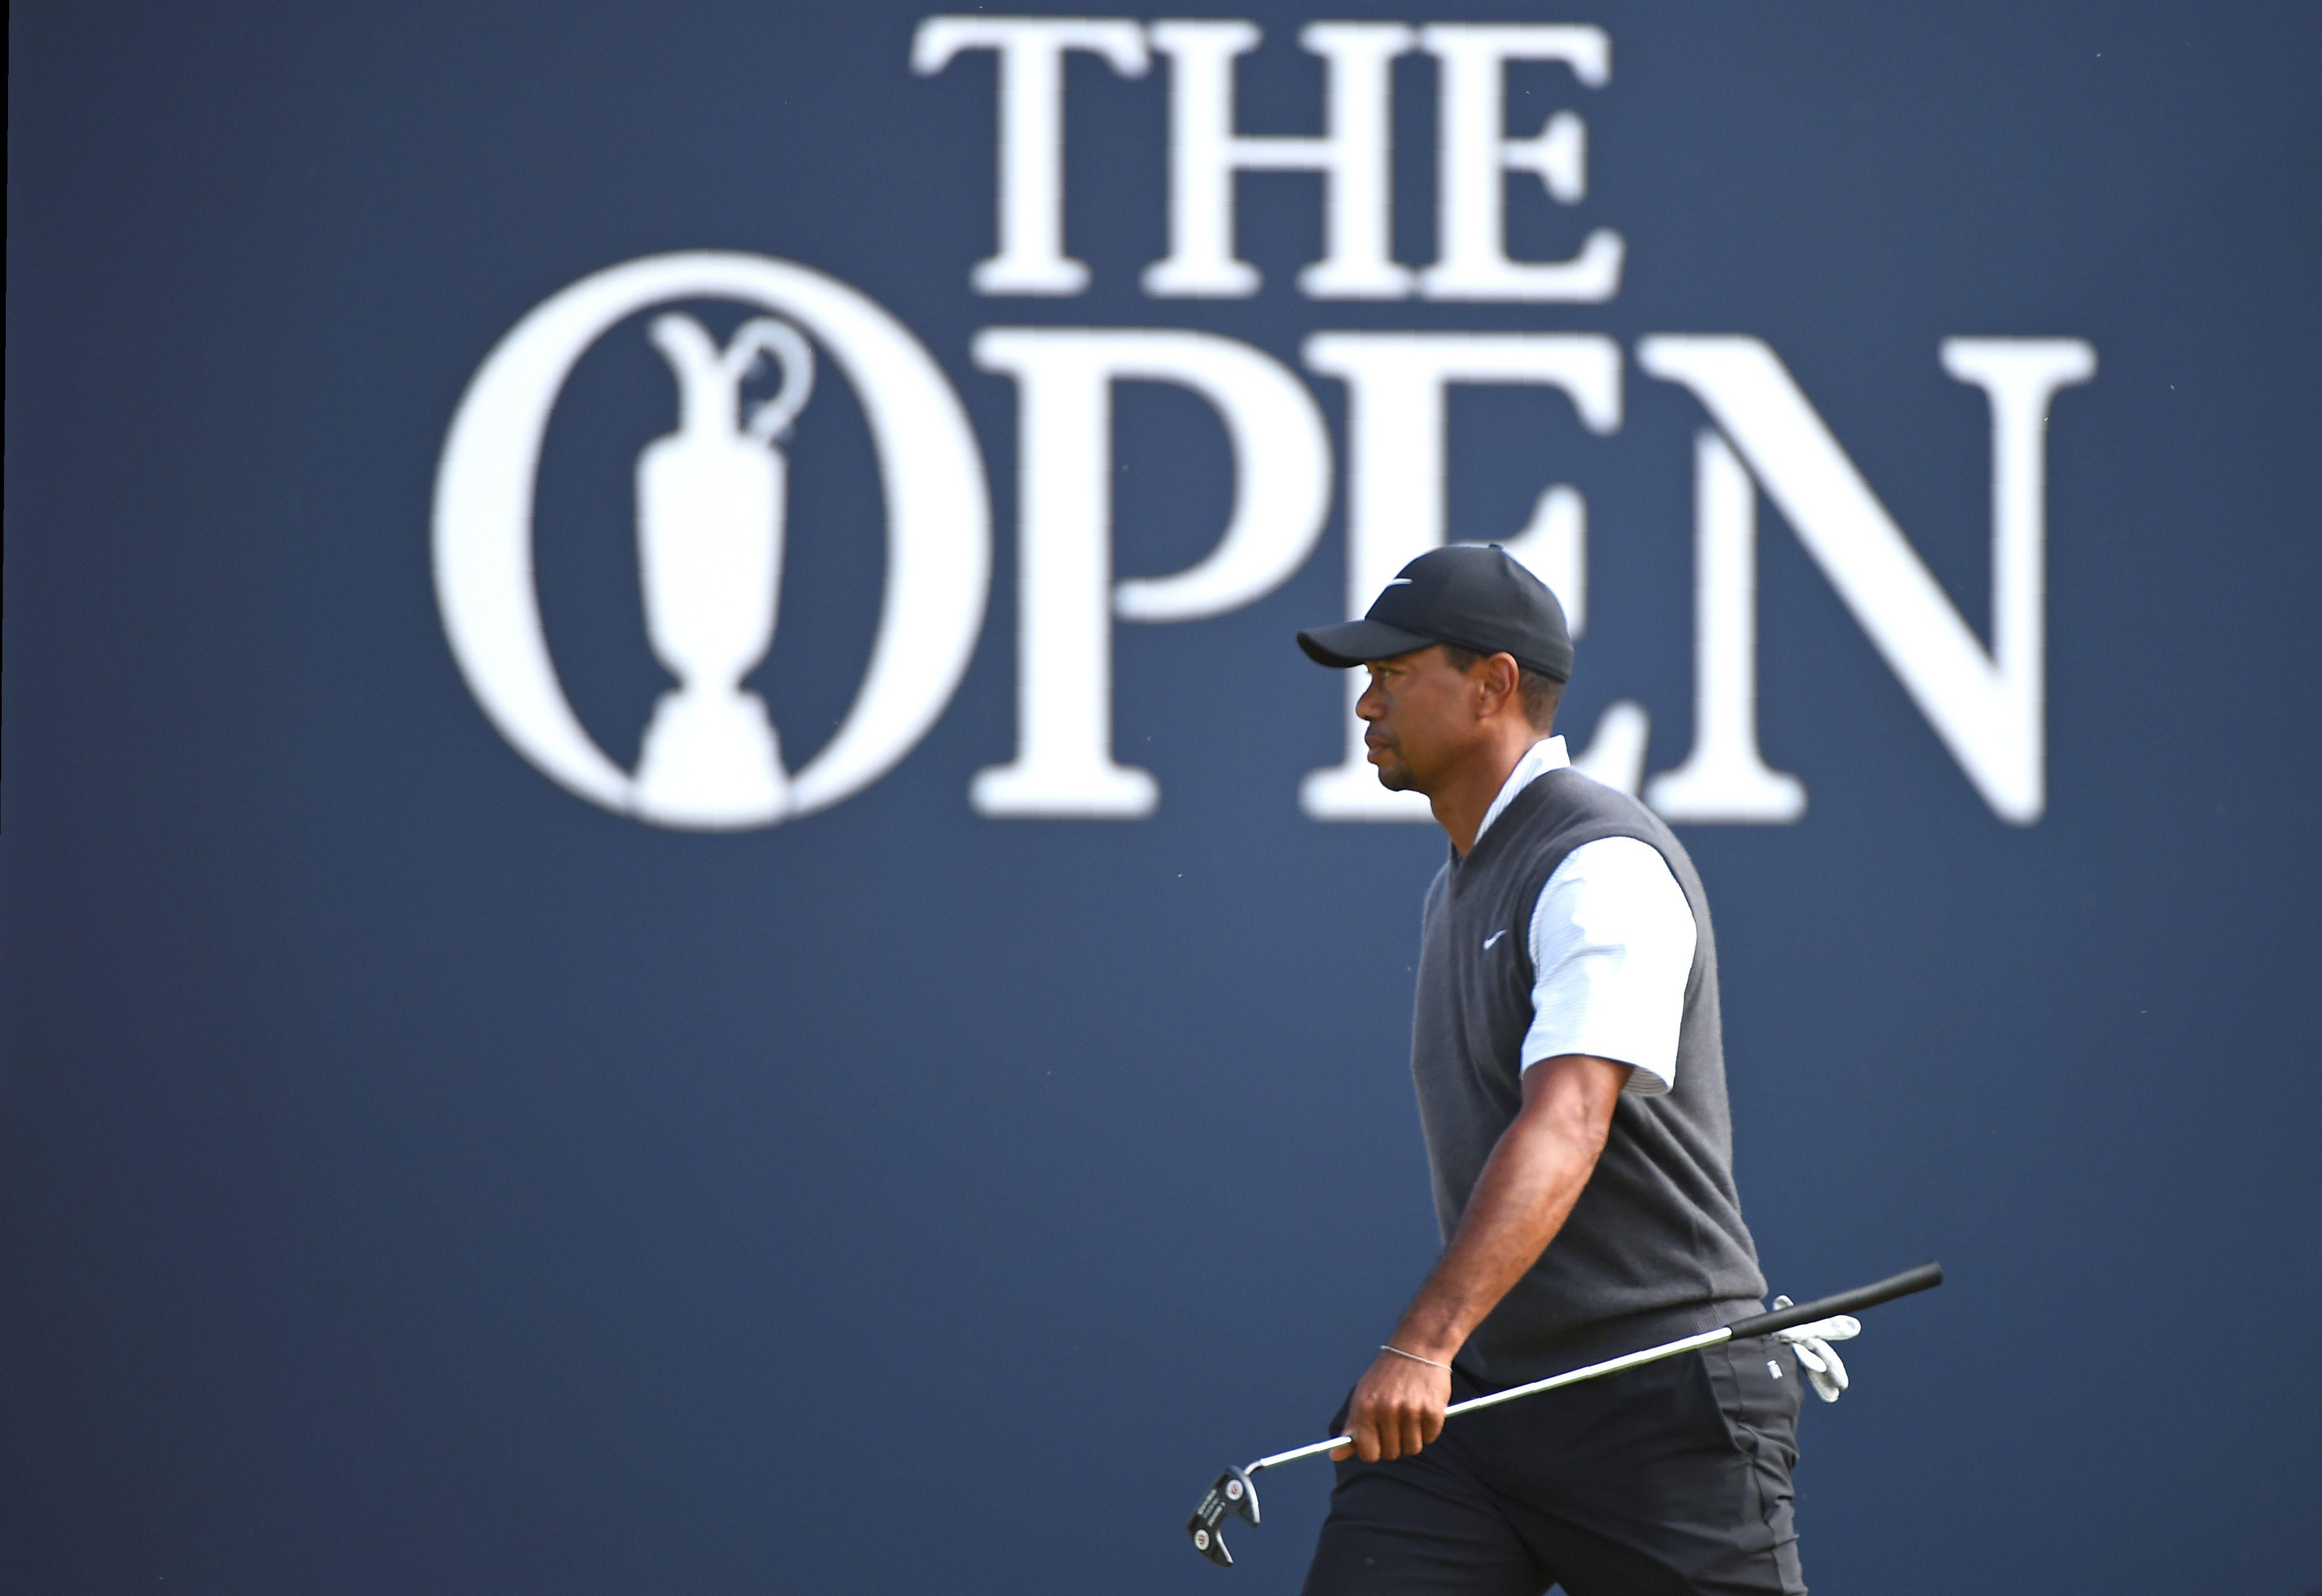 Tiger Woods is just four shots behind the leaders going into the last day at Carnoustie